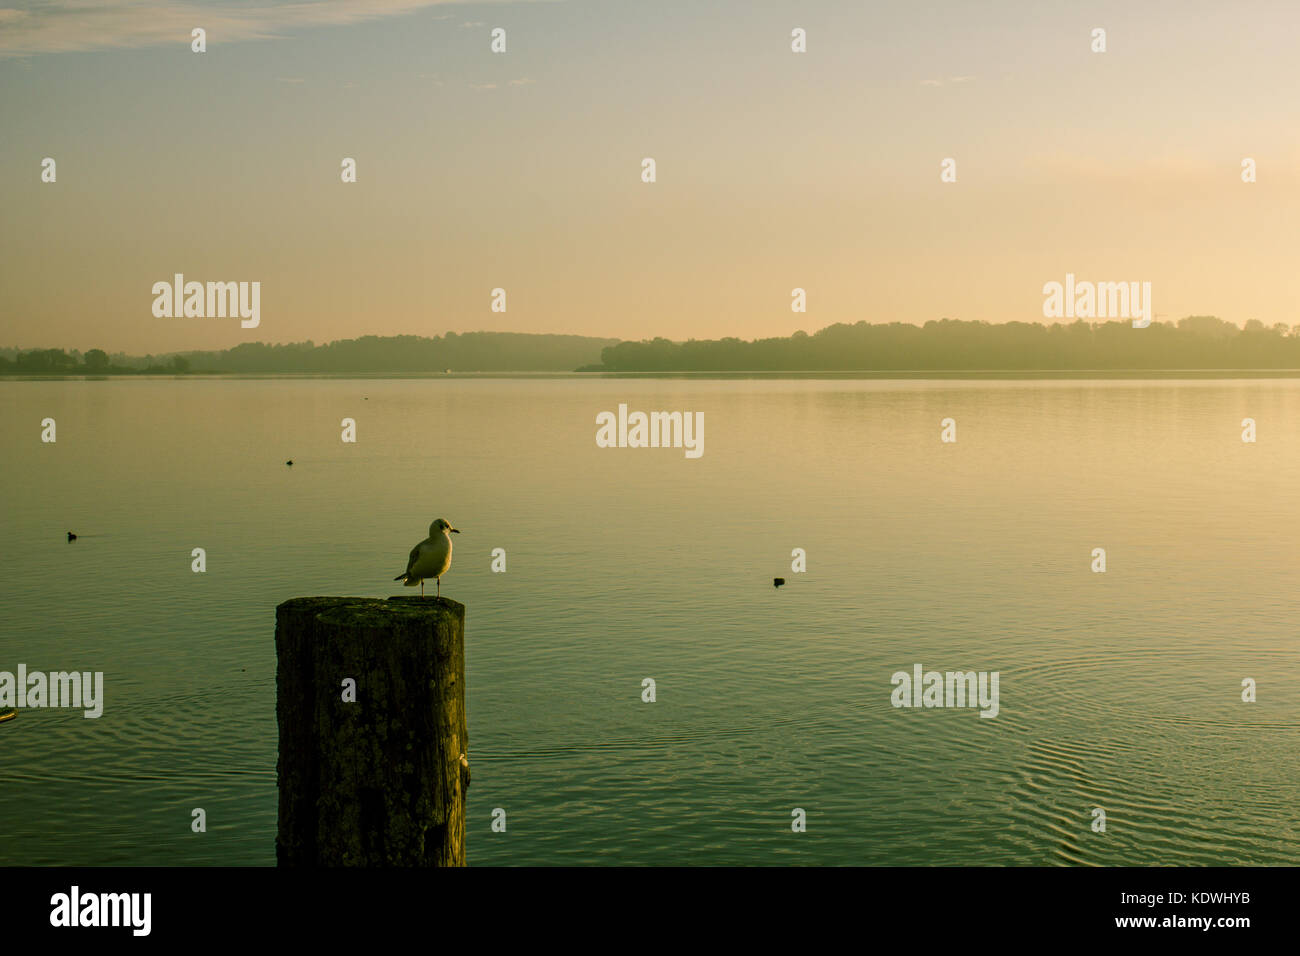 A view of Chiemsee lake, on Prien am Chiemsee, Bavaria, Germany Stock Photo